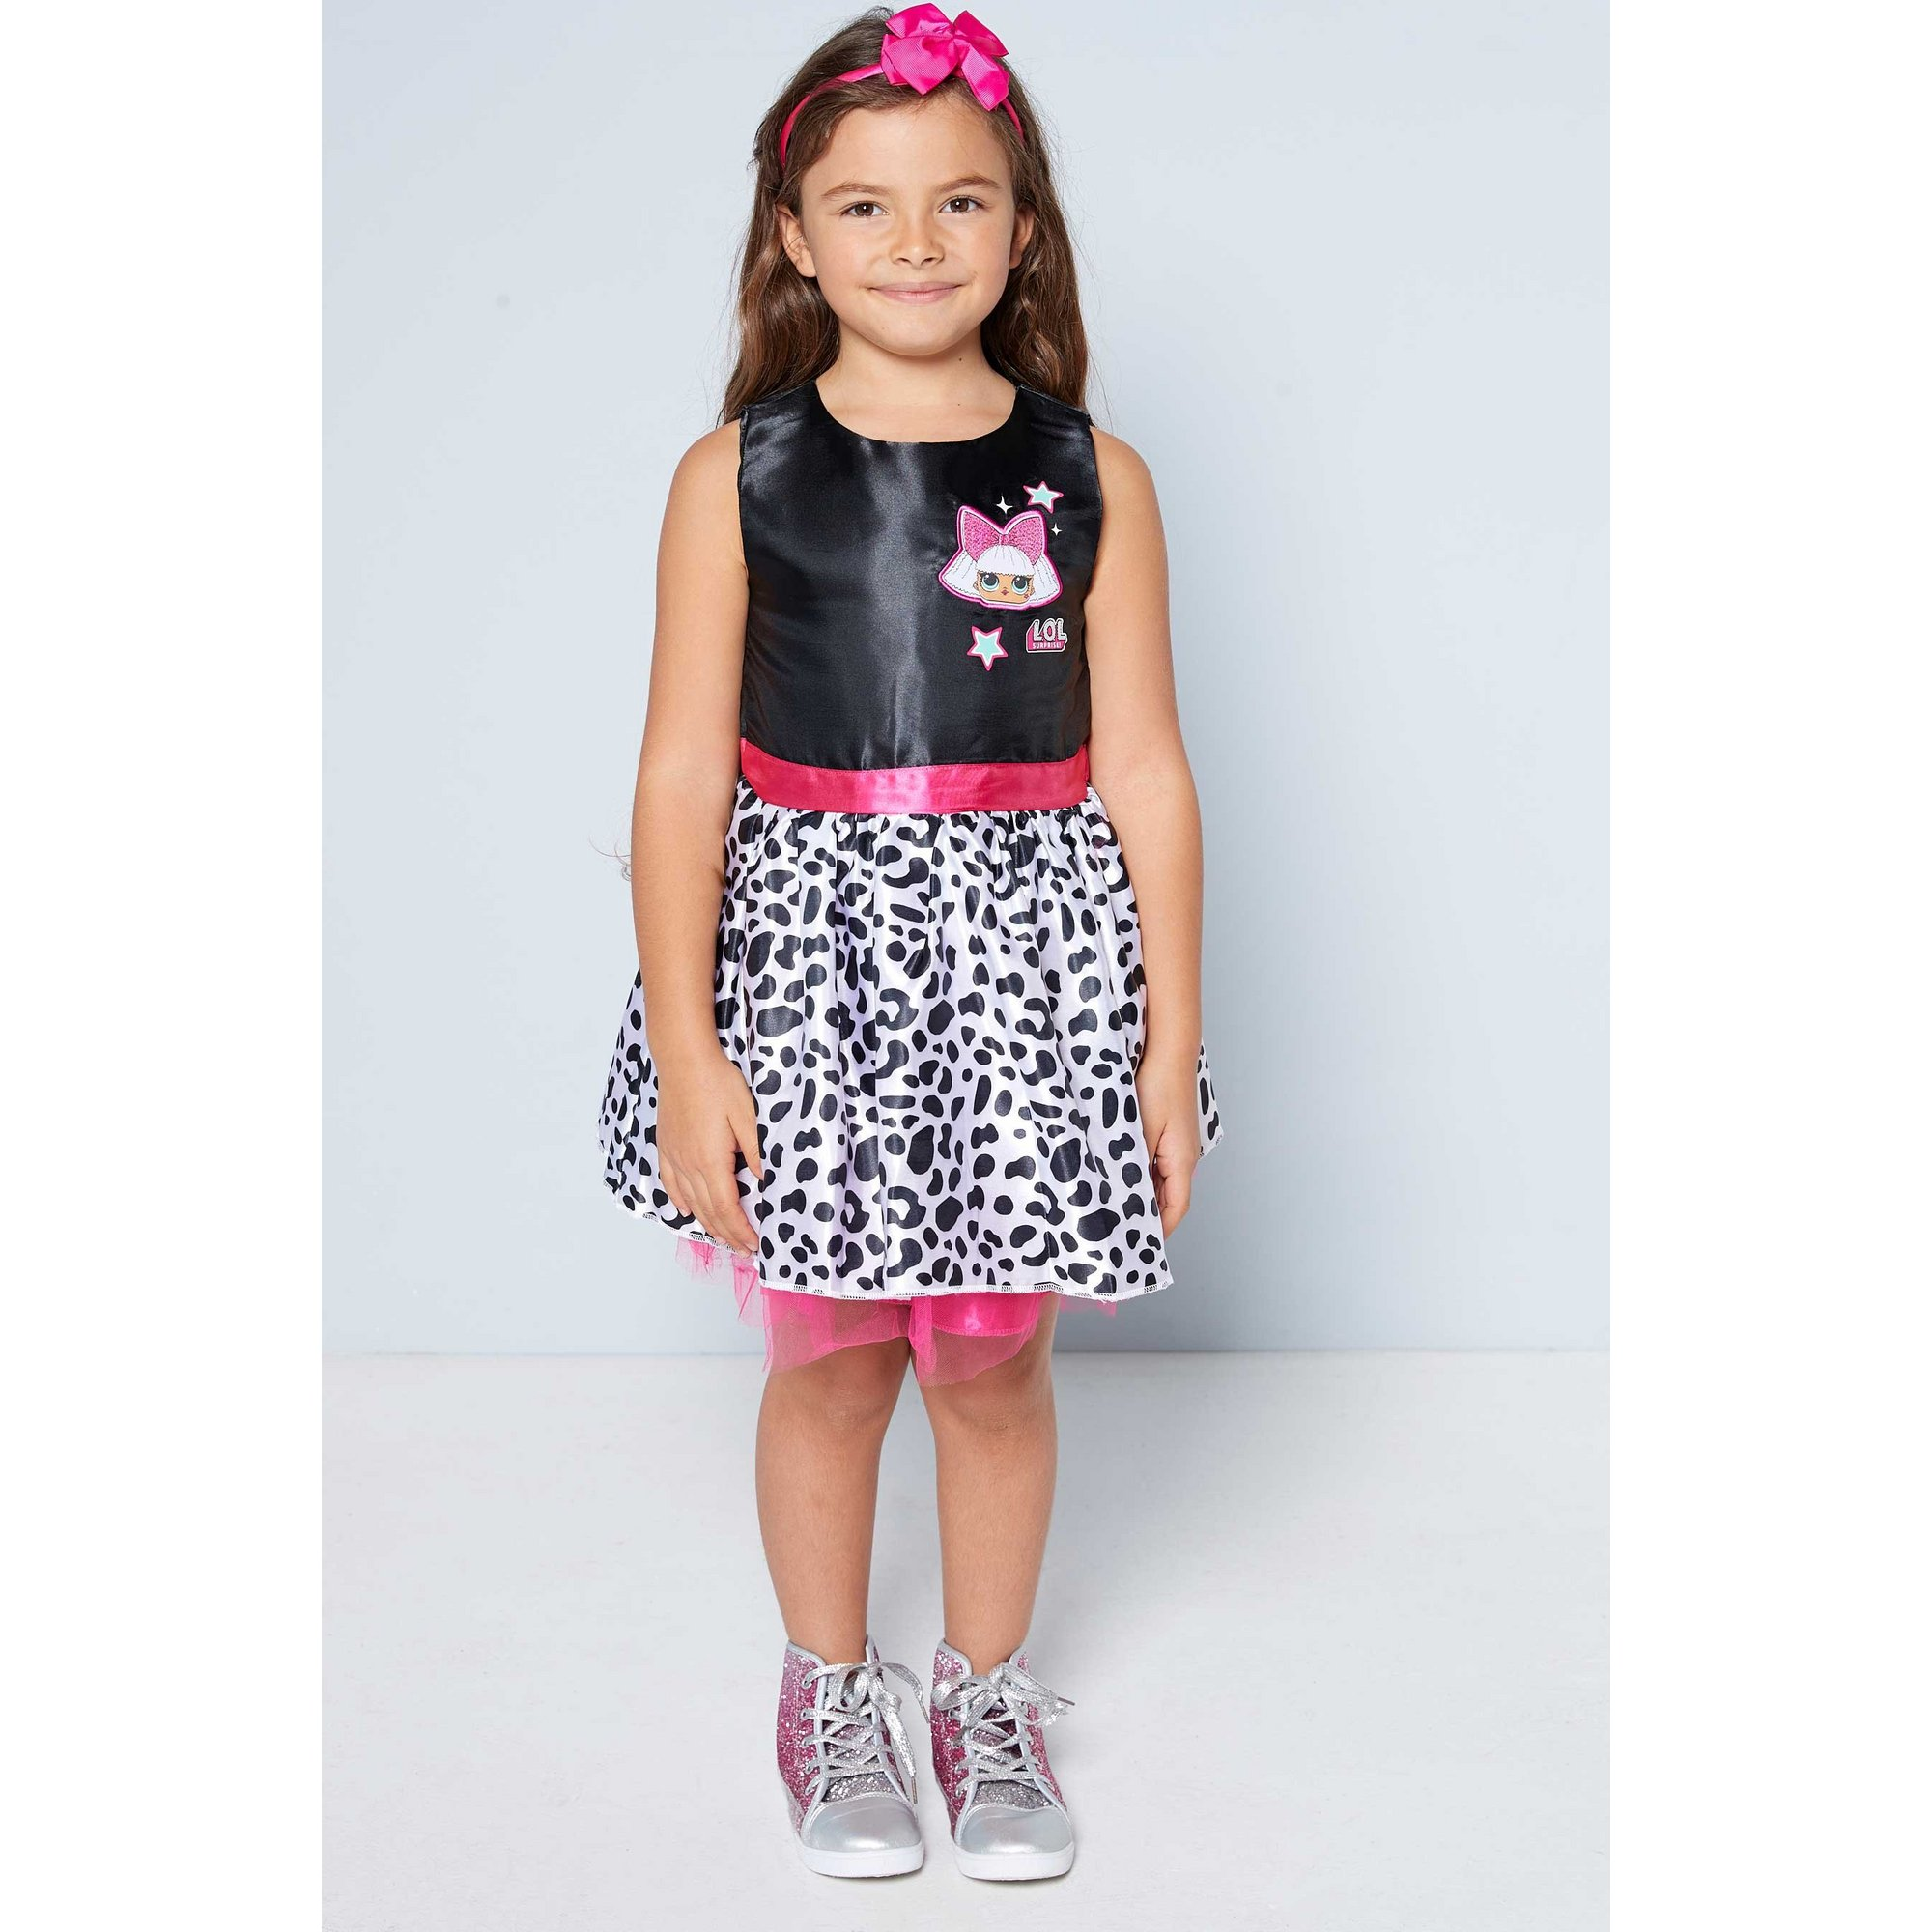 Image of Girls LOL Surprise Dress and Headband Set